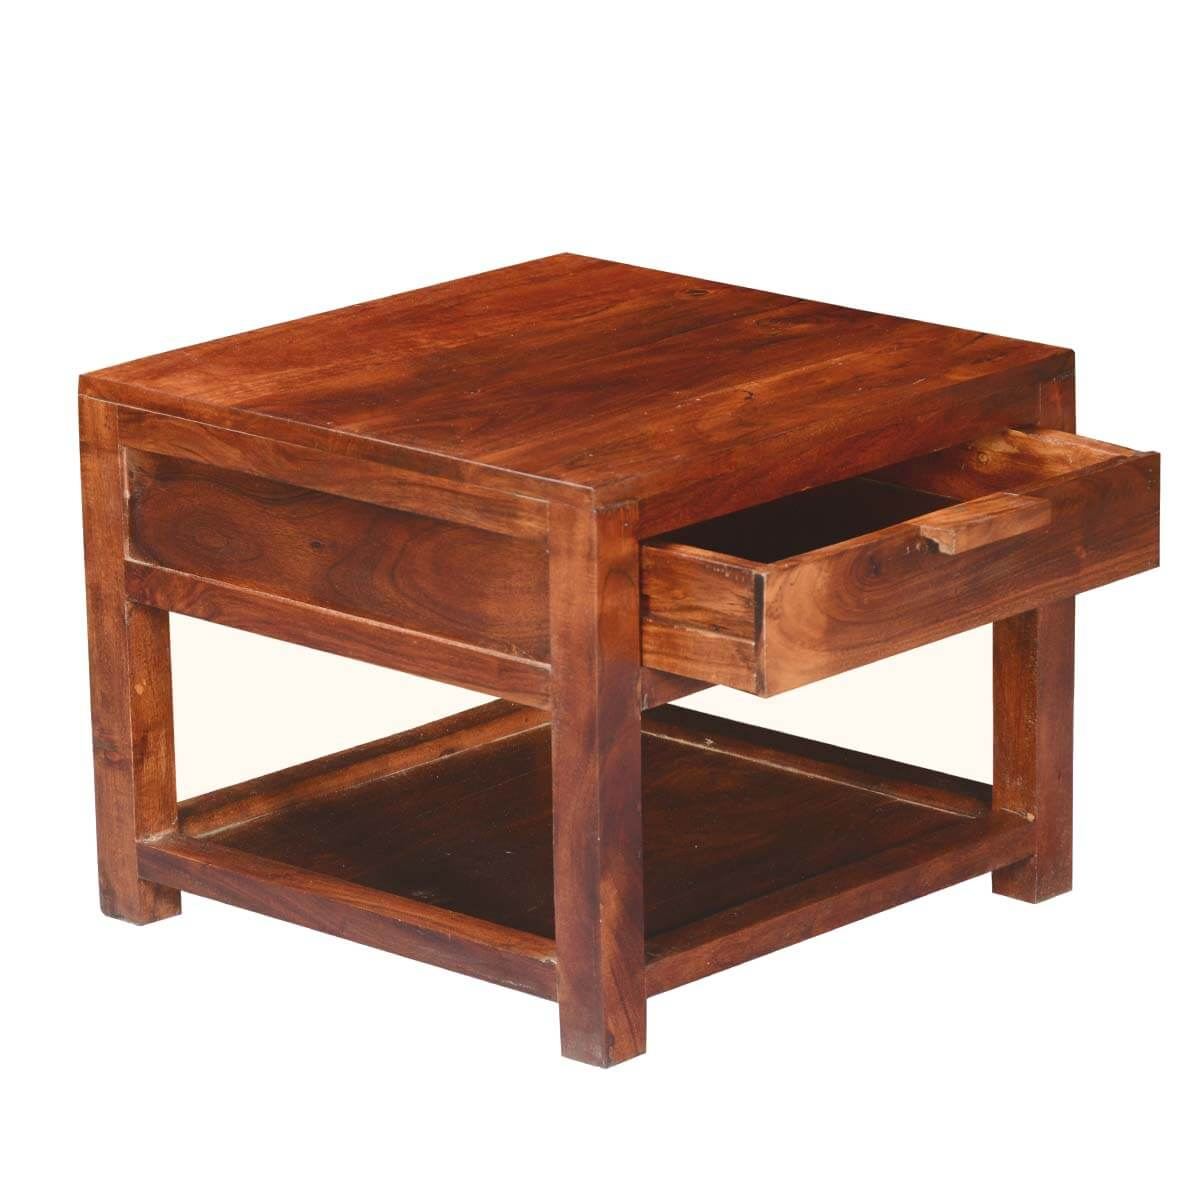 Rustic simplicity acacia wood square 2 tier small side for Small wooden side table